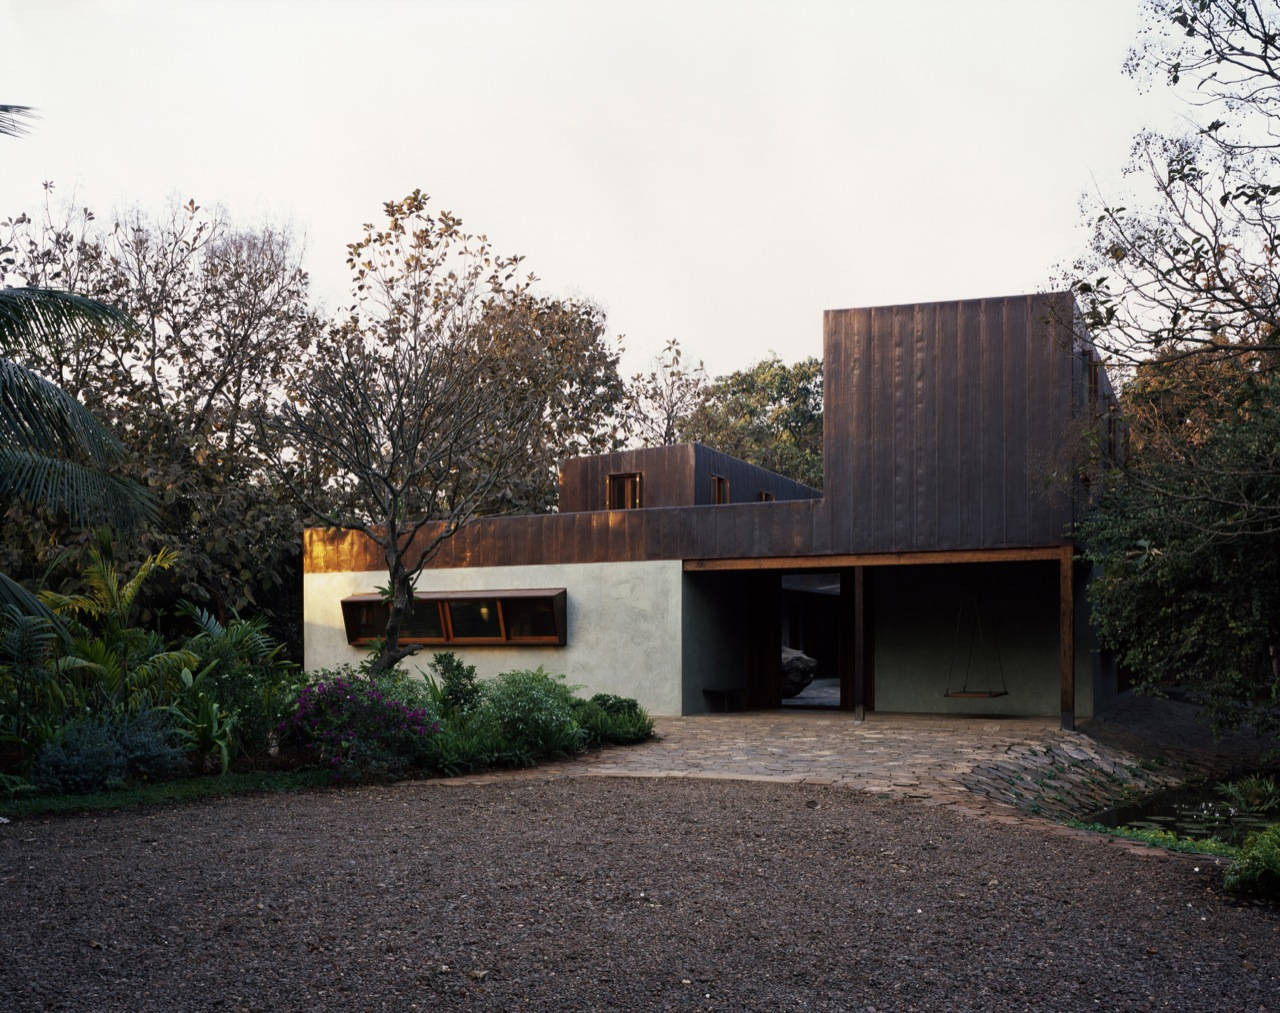 Copper House II / Studio Mumbai, Courtesy of  studio mumbai